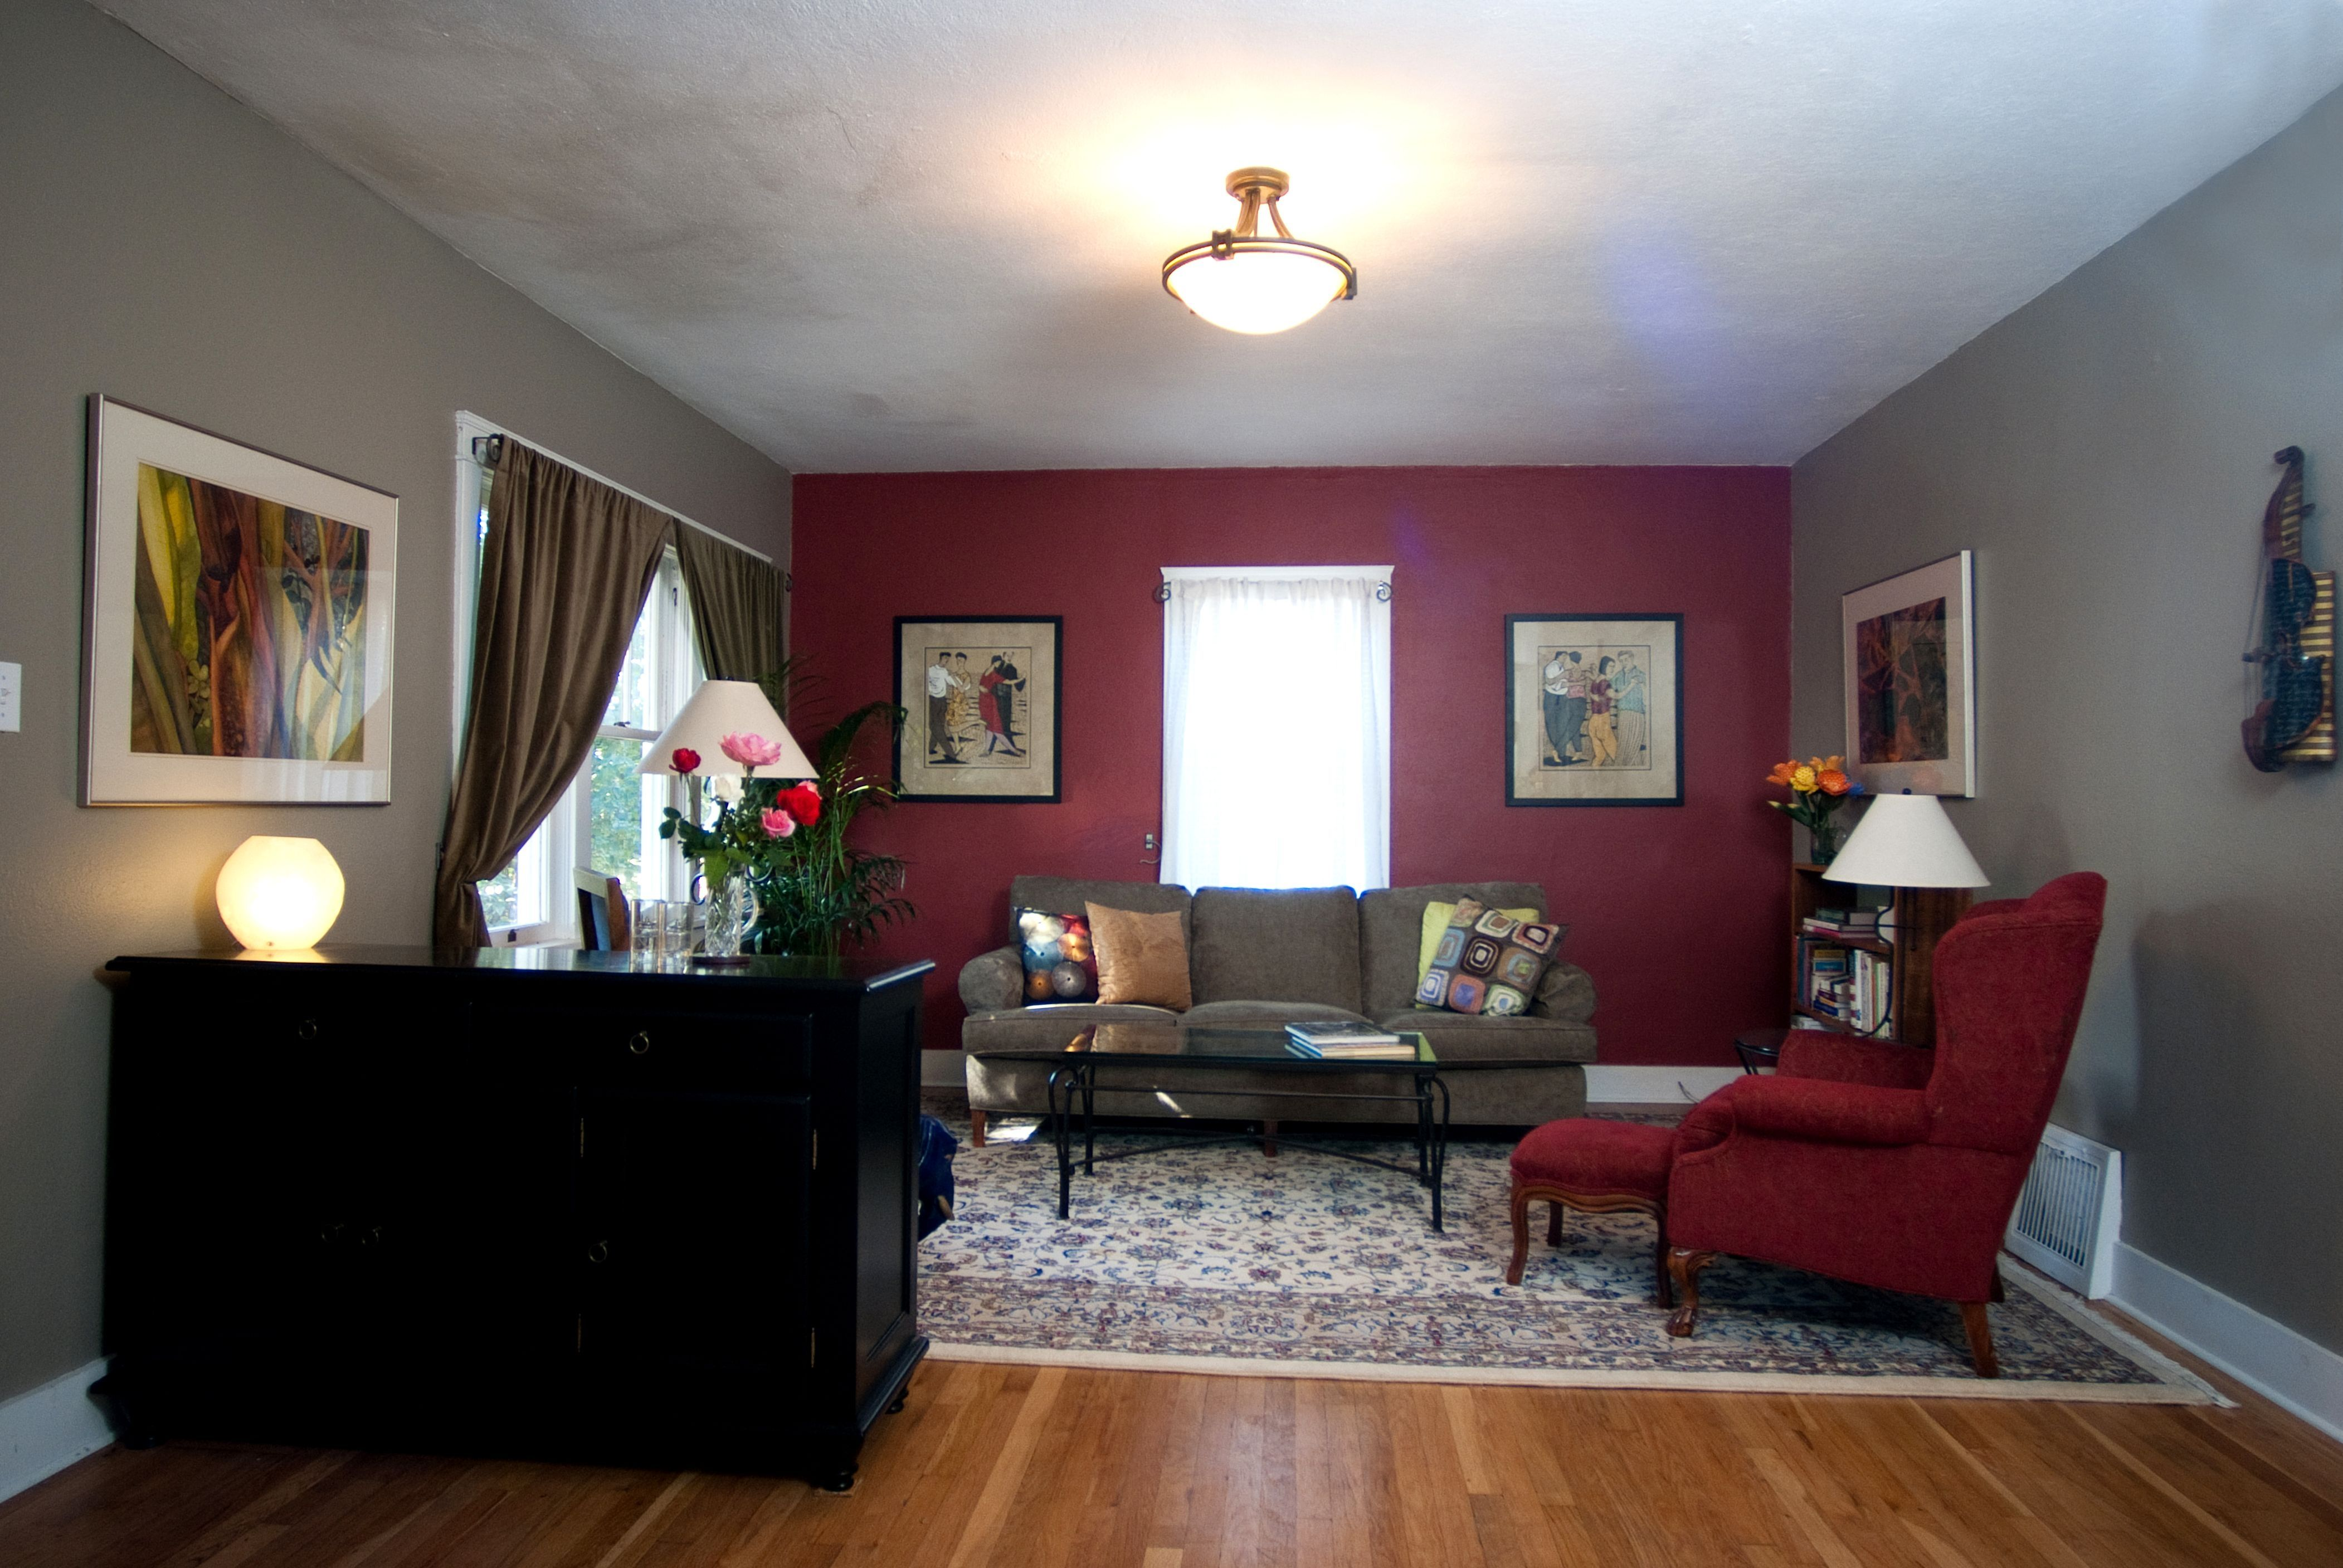 Show Me Living Room Ideas With Images